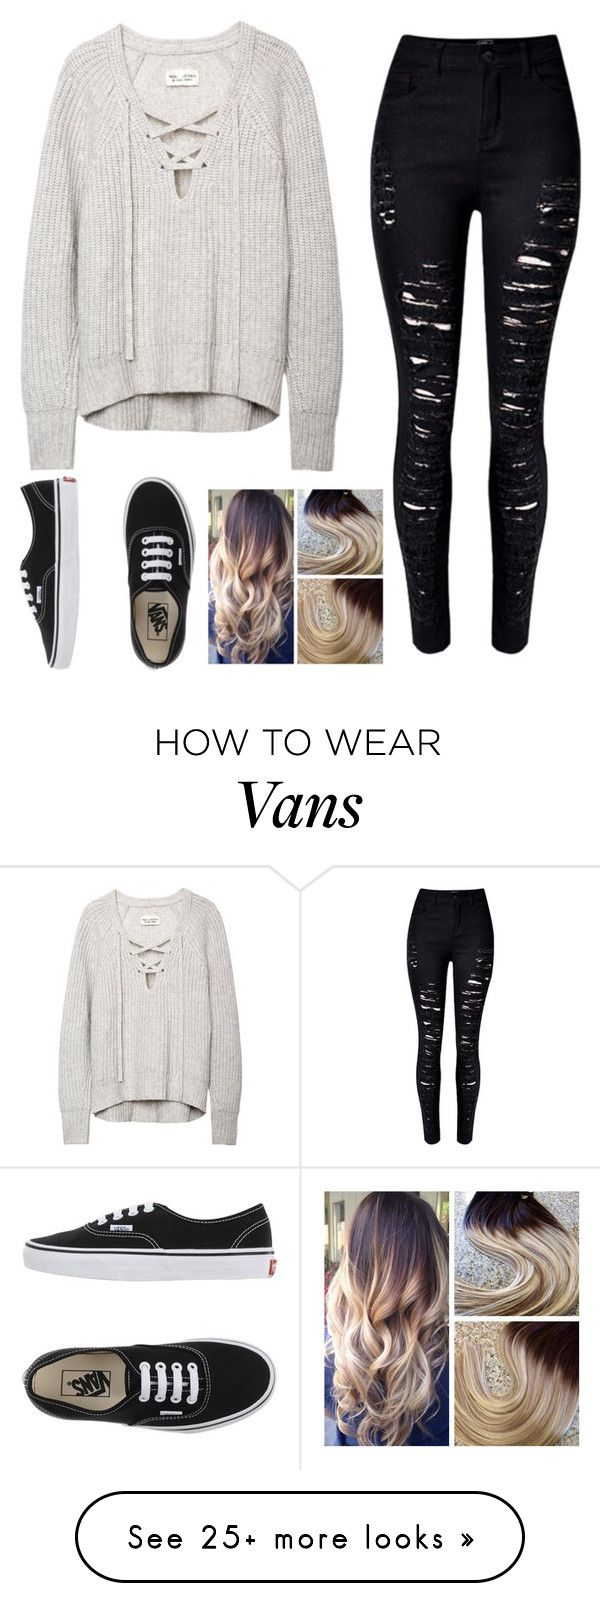 """Untitled #671"" by tokyoghoul1 on Polyvore featuring Vans, women's clothing, women, female, woman, misses and juniors"